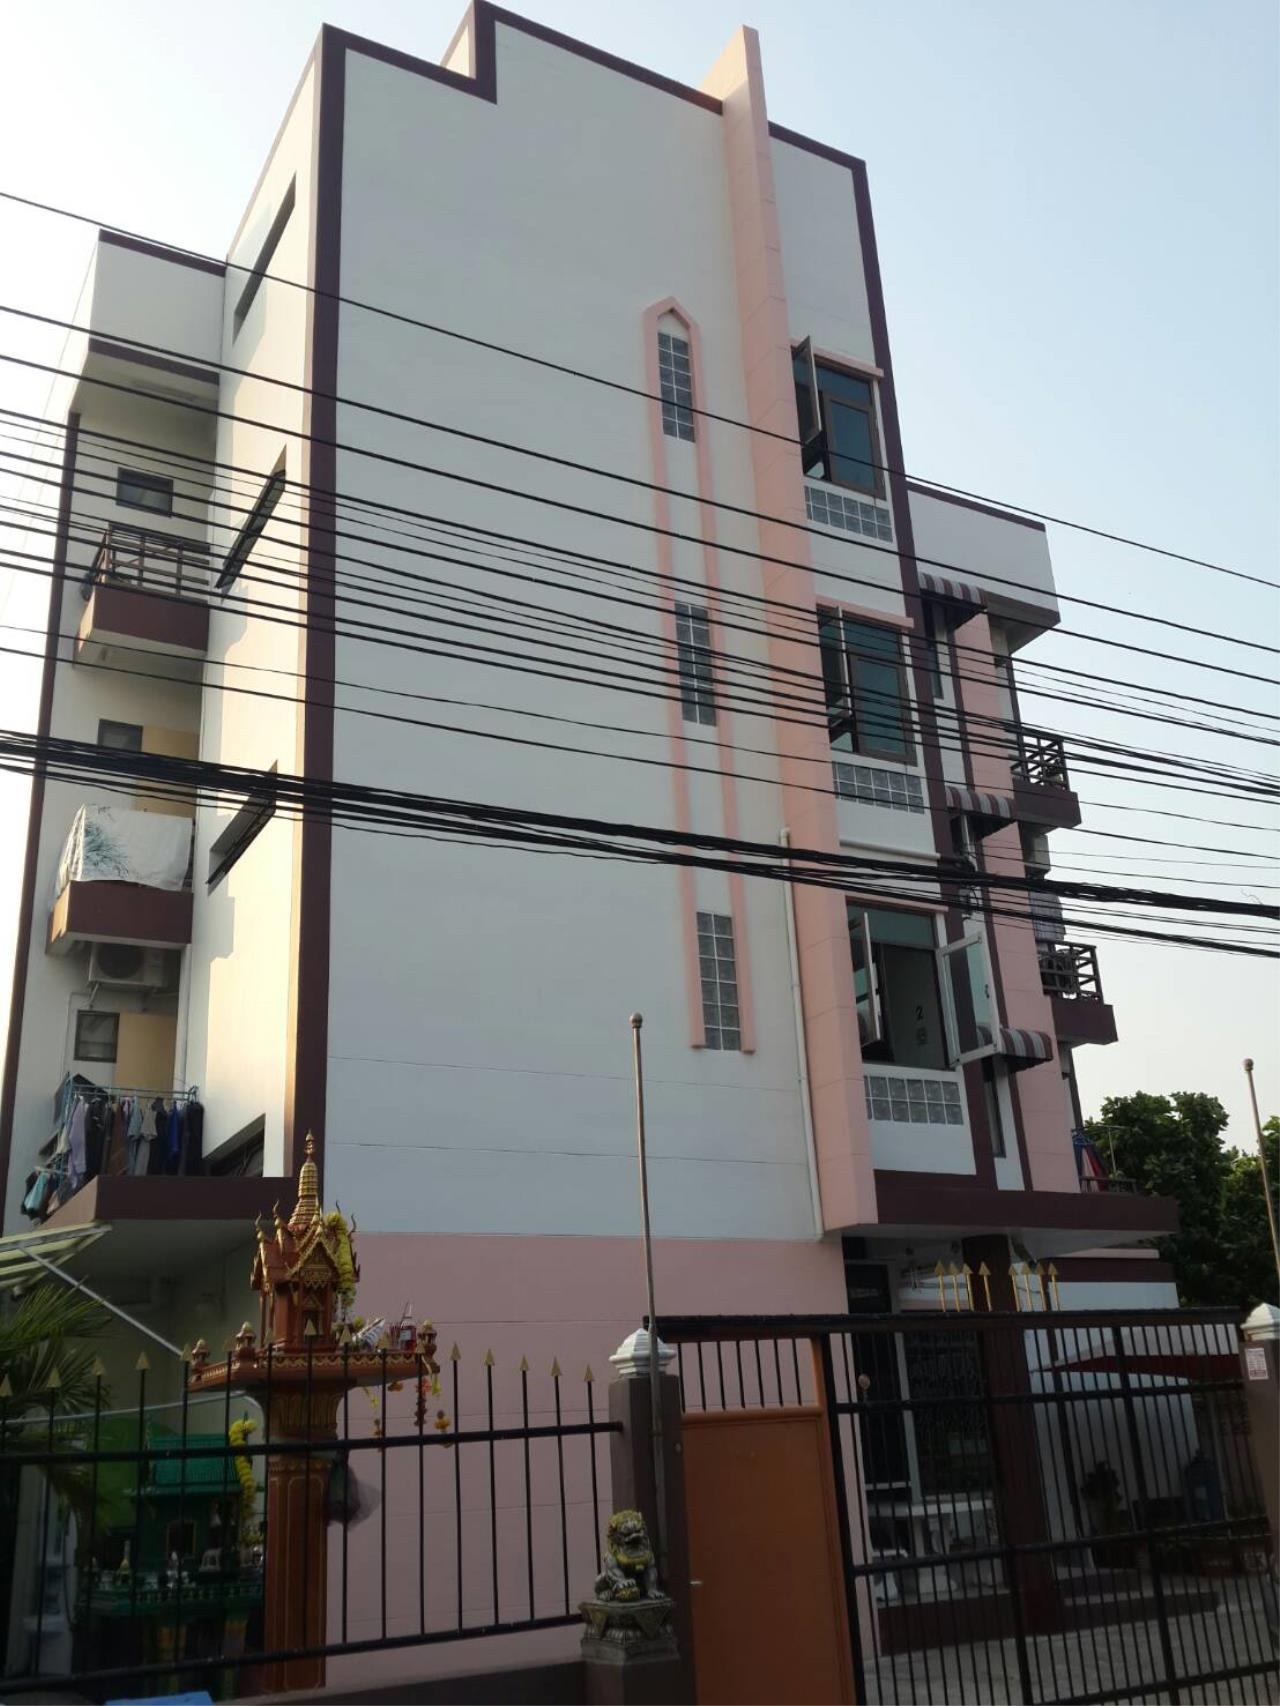 BKK BestLife Real Estate Agency's Samrong Apartment Building Sale 31 Units Sukhumvit 1